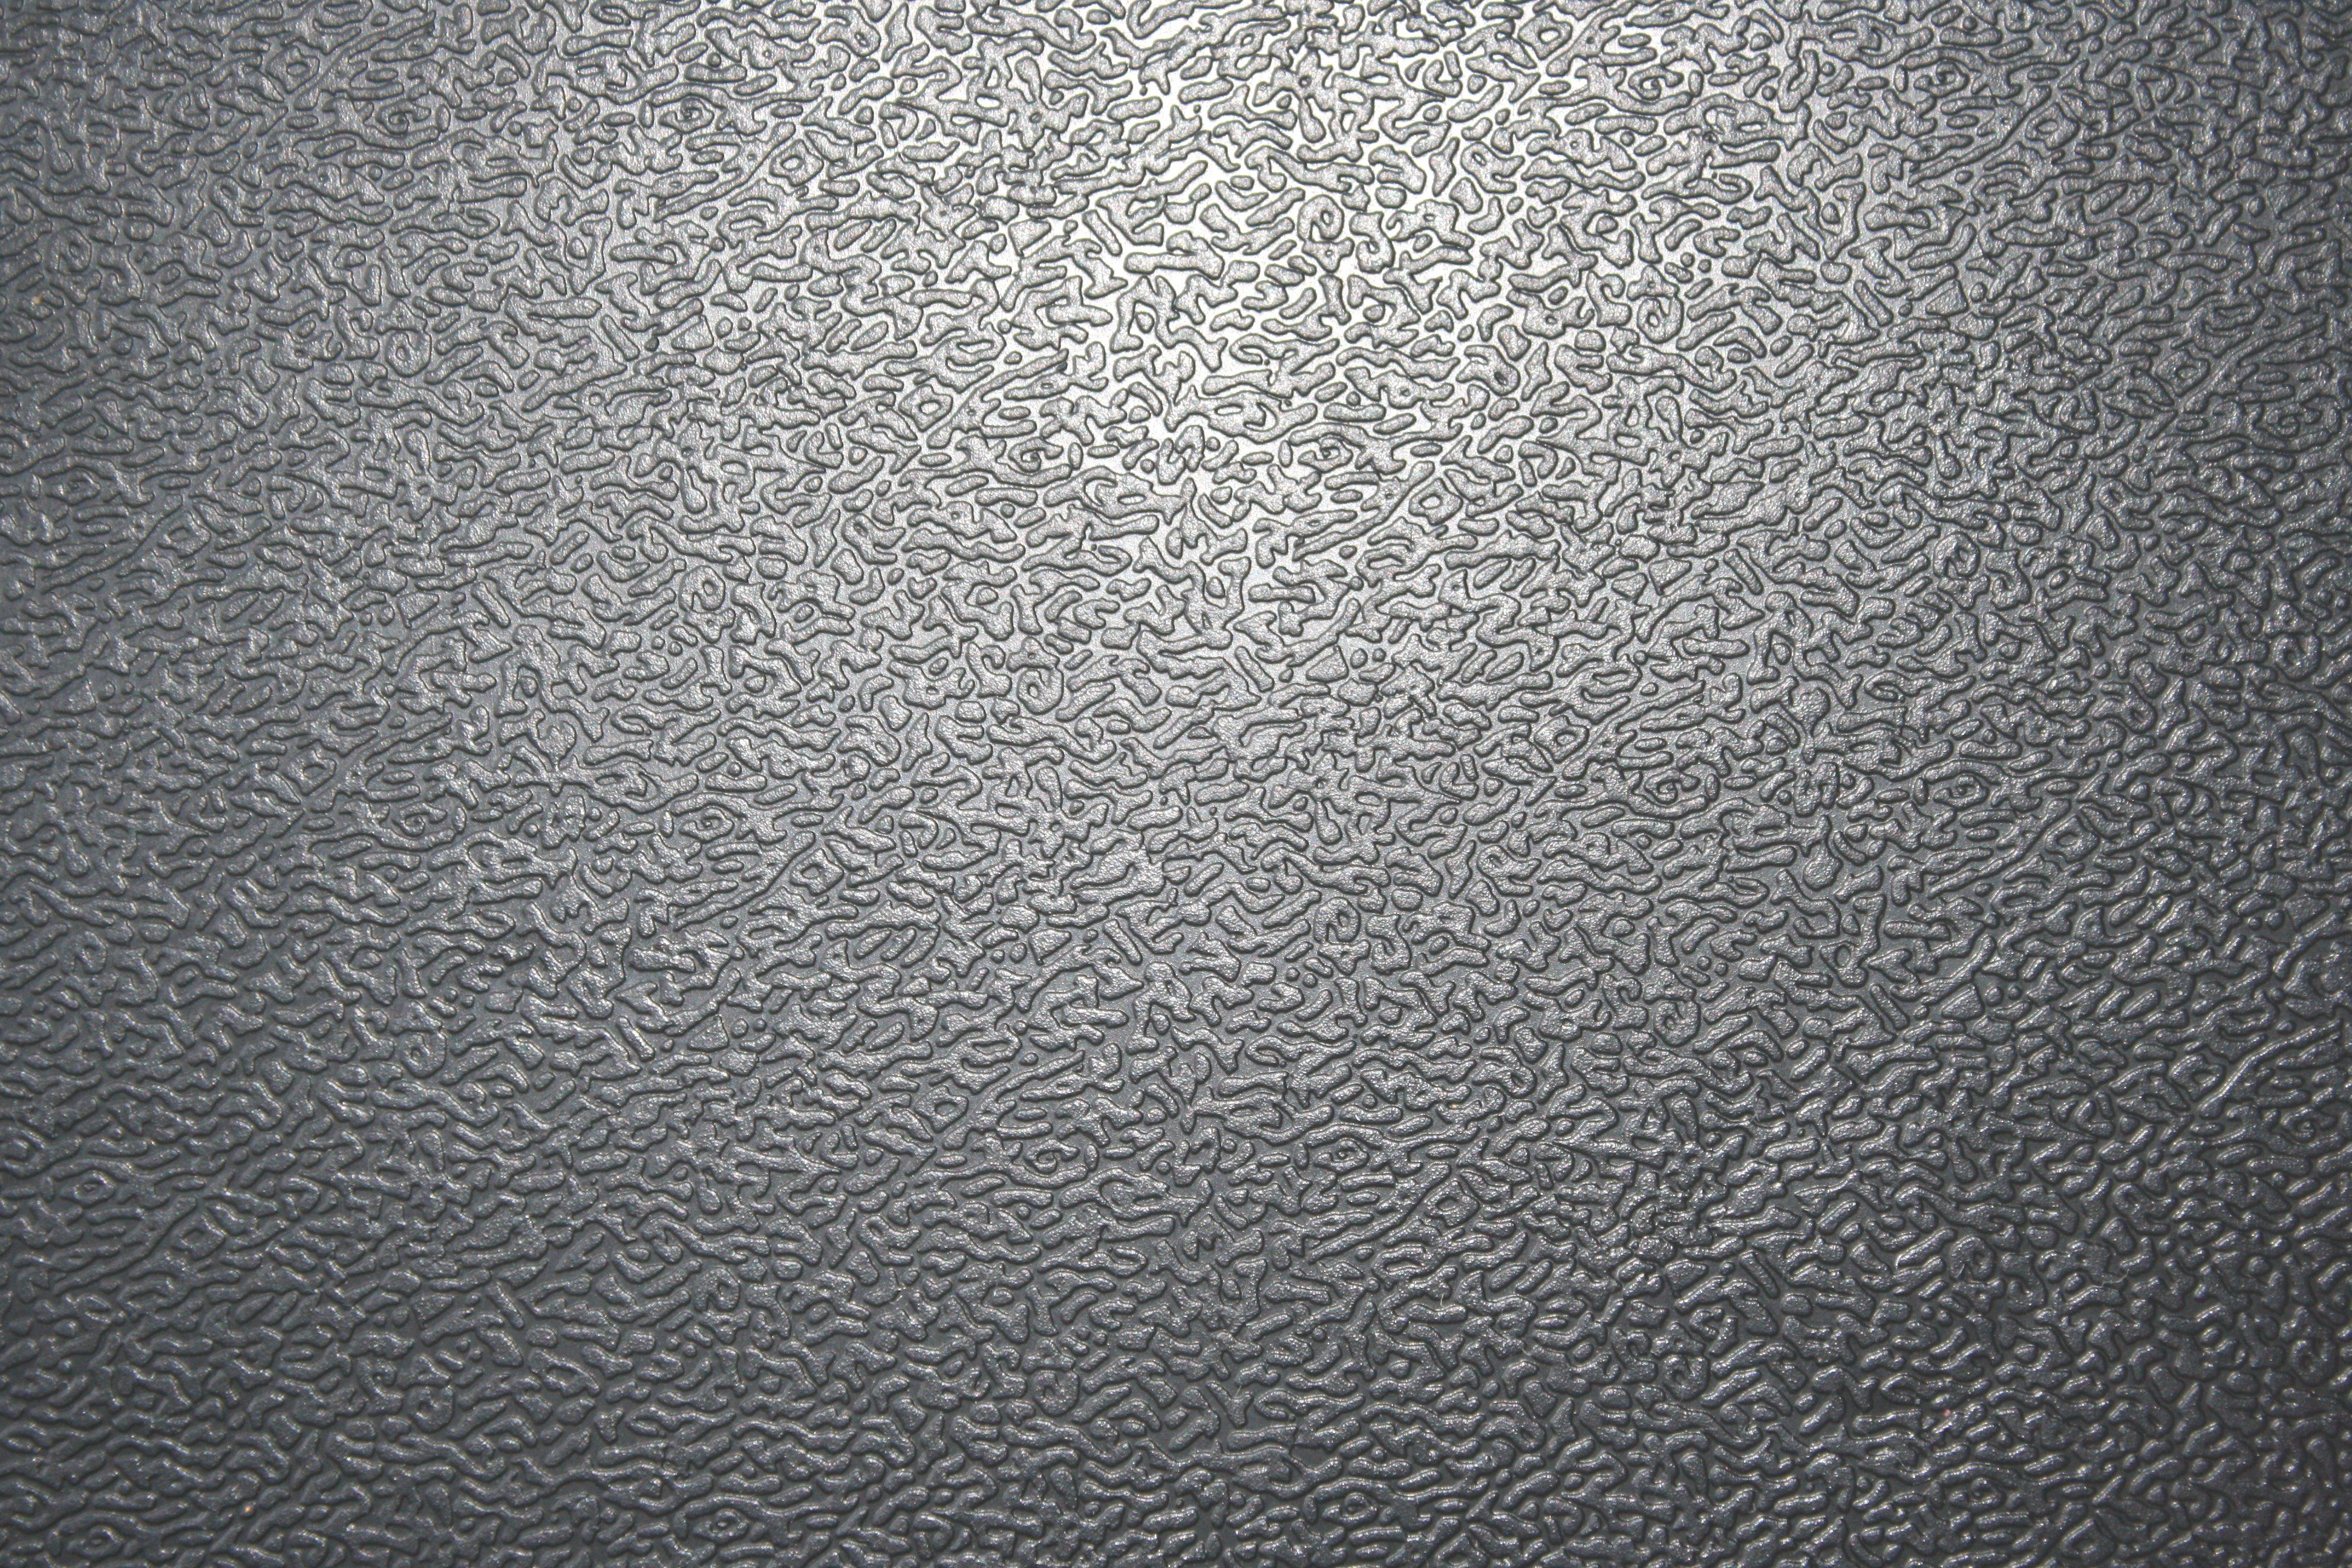 40 Grey Texture Background And Wallpaper For Designer Grey Wallpaper Background Gold Wallpaper Cool Backgrounds Wallpapers